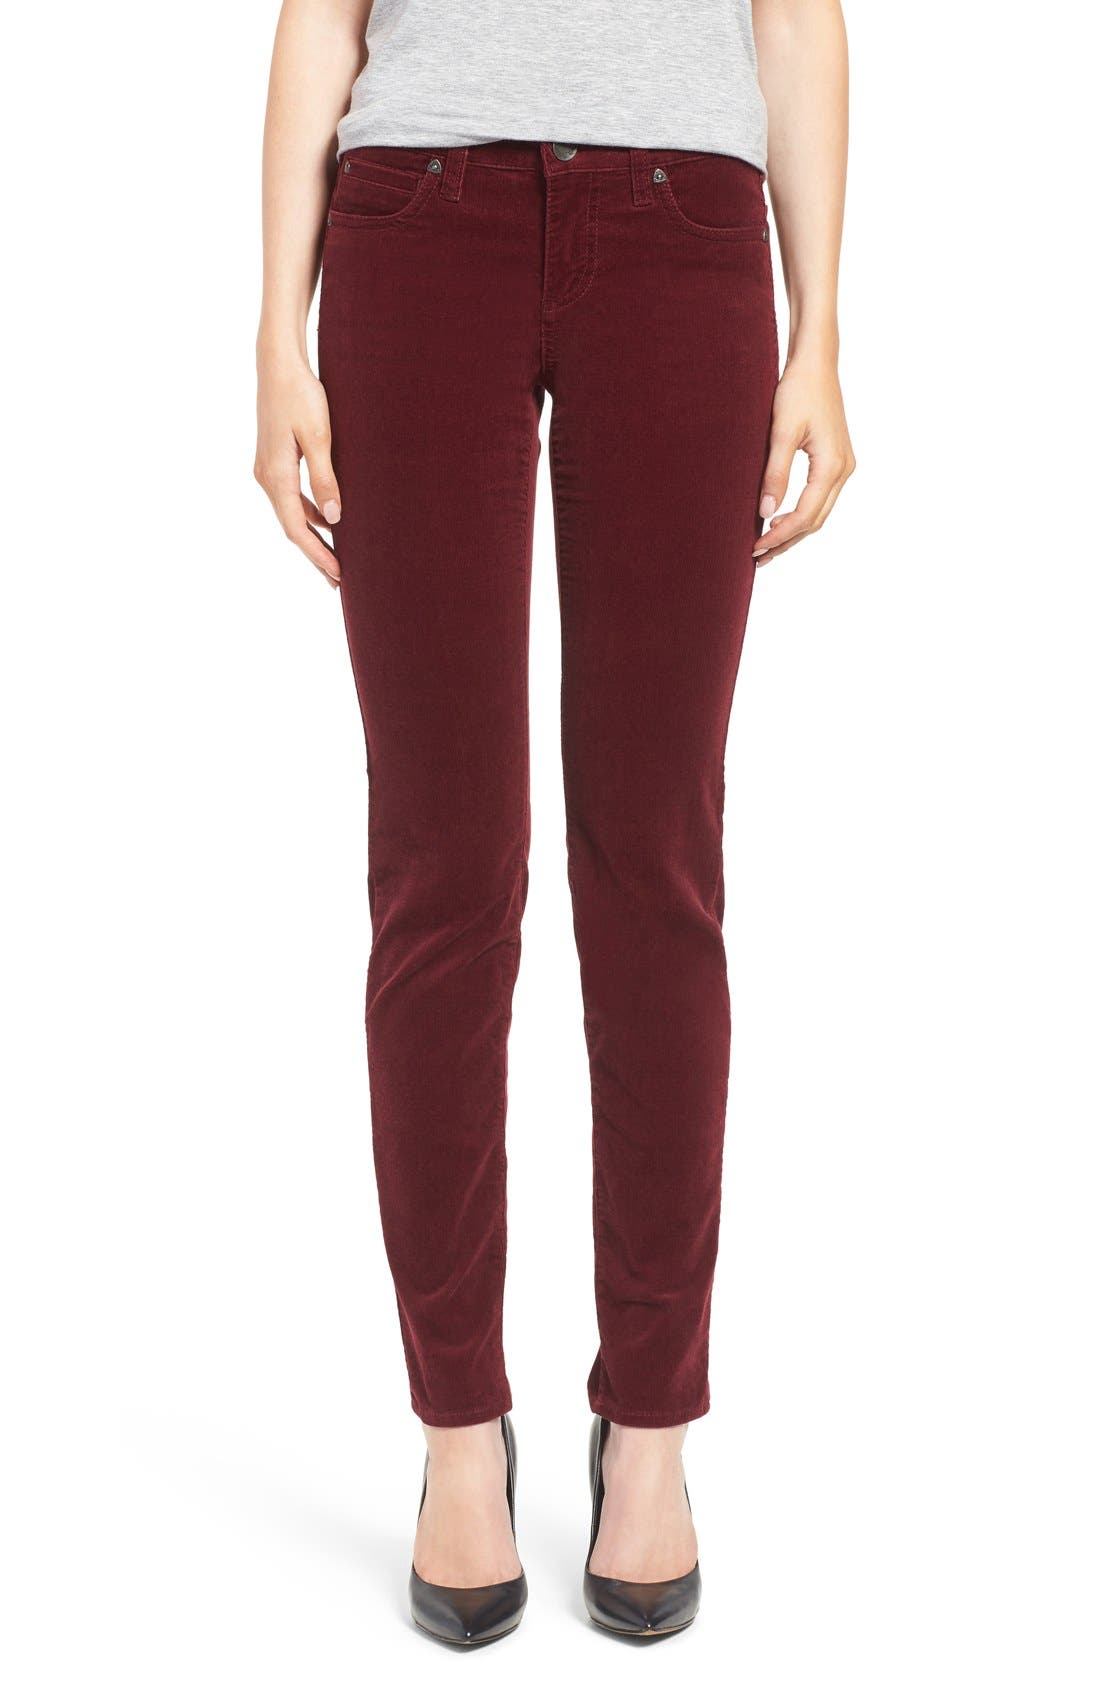 Main Image - KUT from the Kloth Diana Stretch Corduroy Skinny Pants (Regular & Petite)